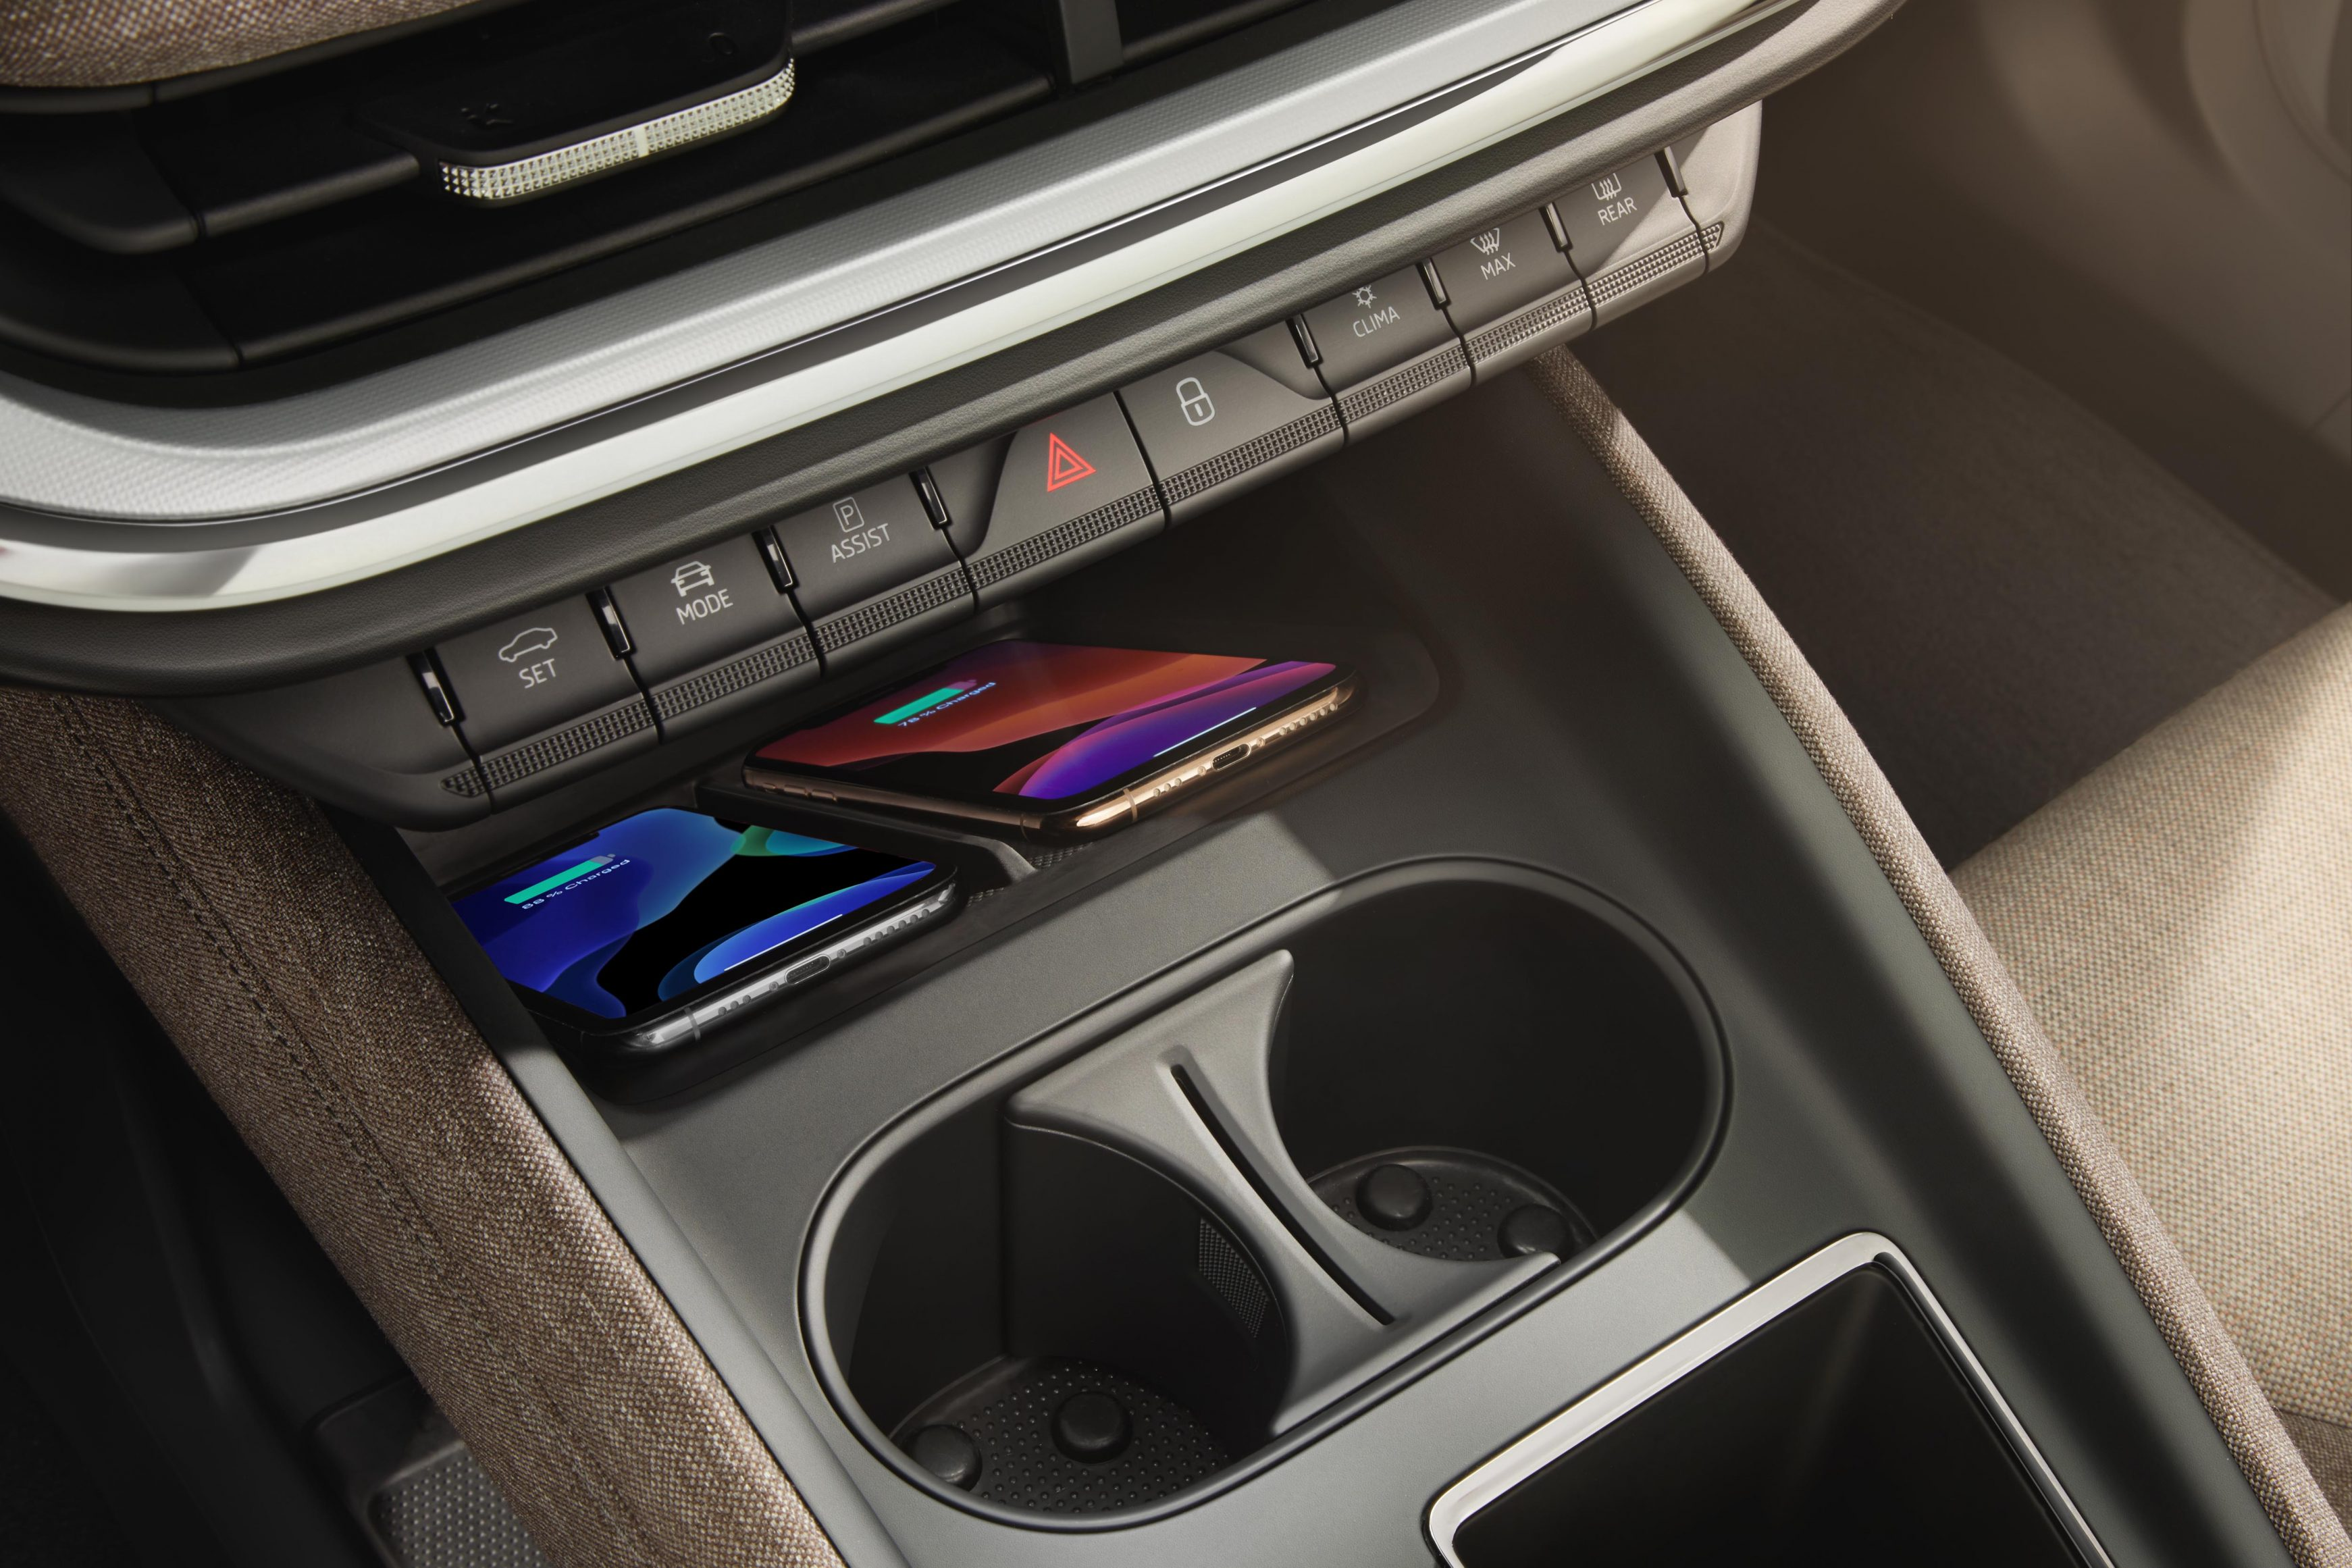 Wireless smartphone connectivity and charging is standard in the Skoda Enyaq iV